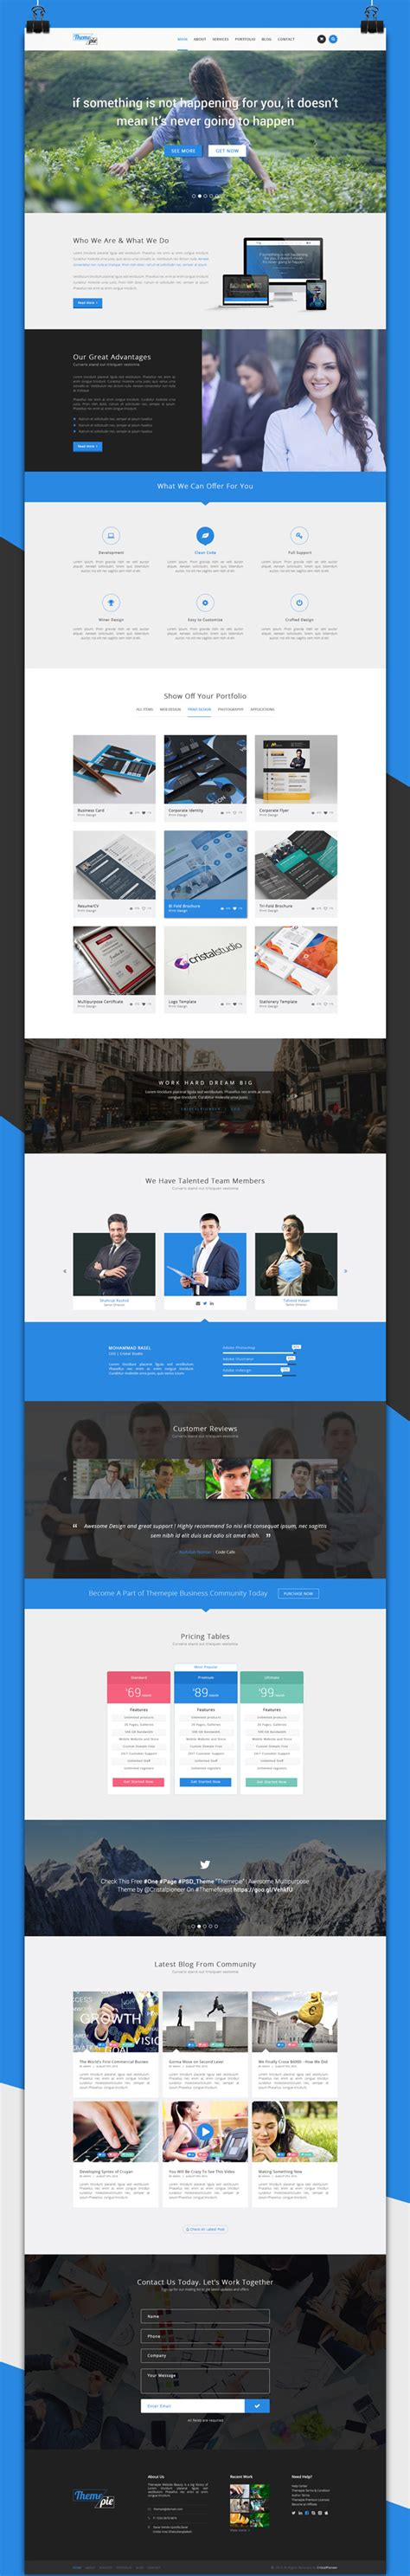 themepie free one page psd web template free download